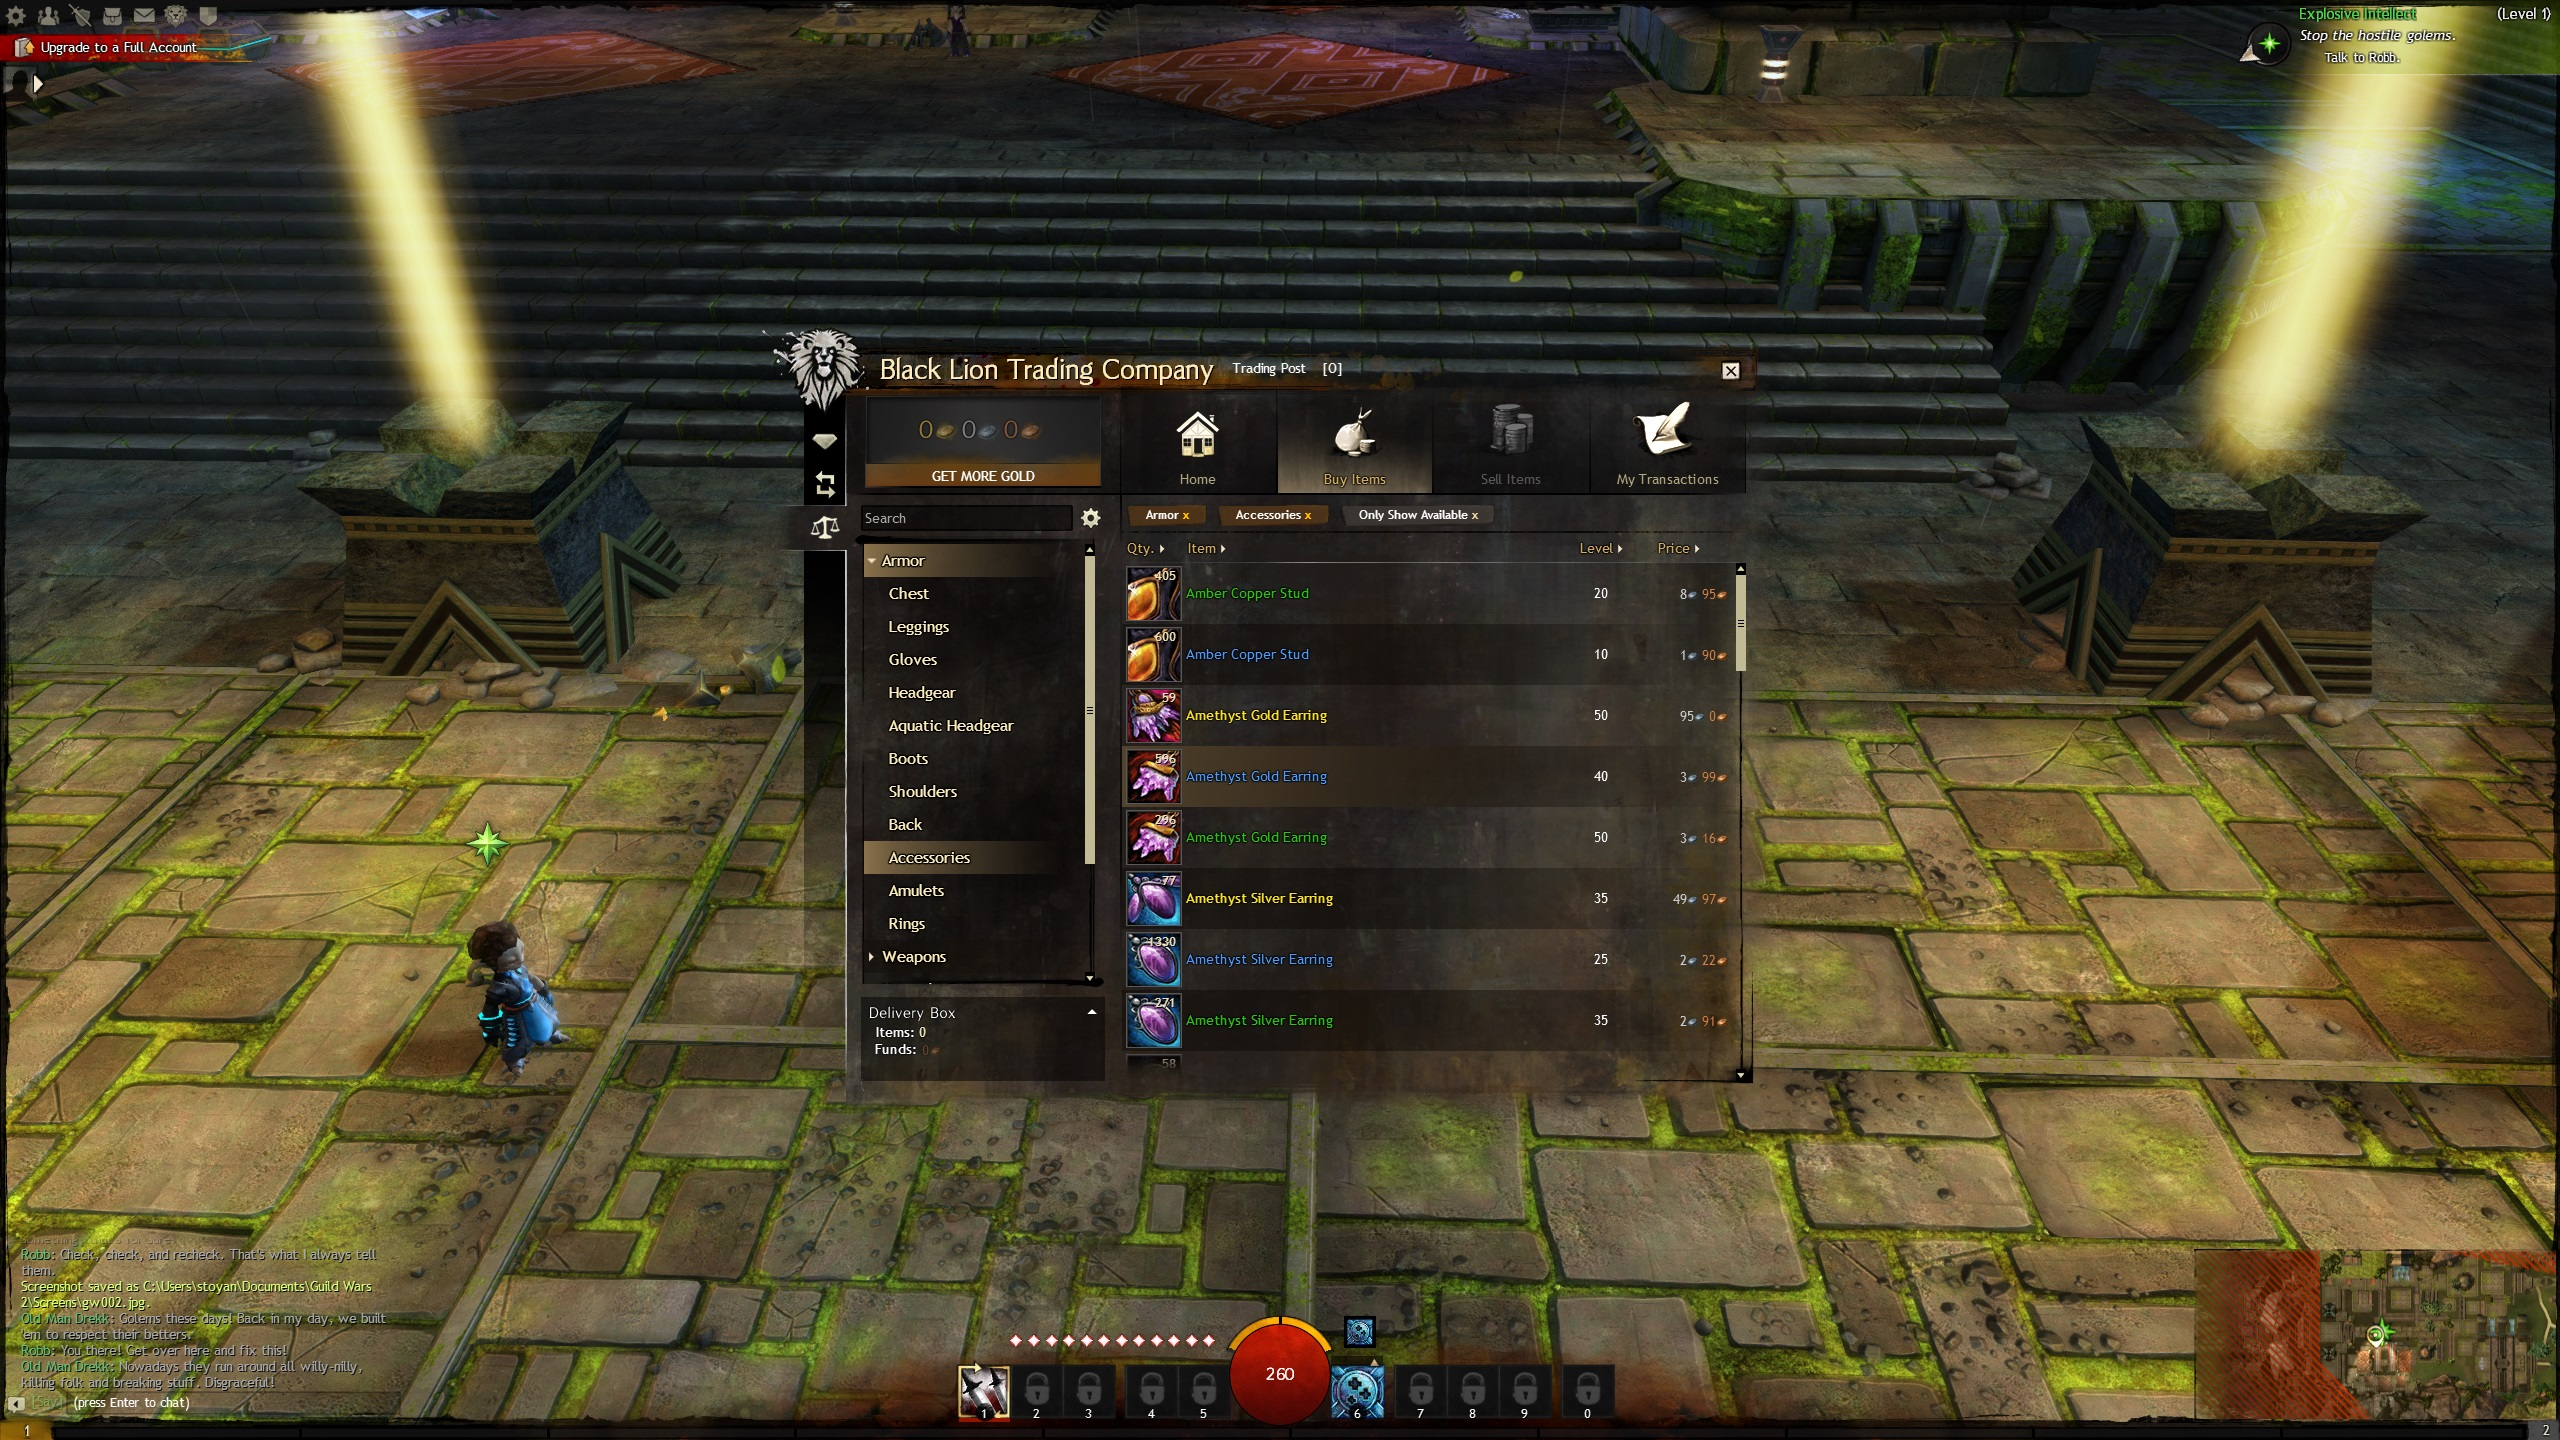 Black Lion Trading Post in-game shop, implemented with Coherent UI